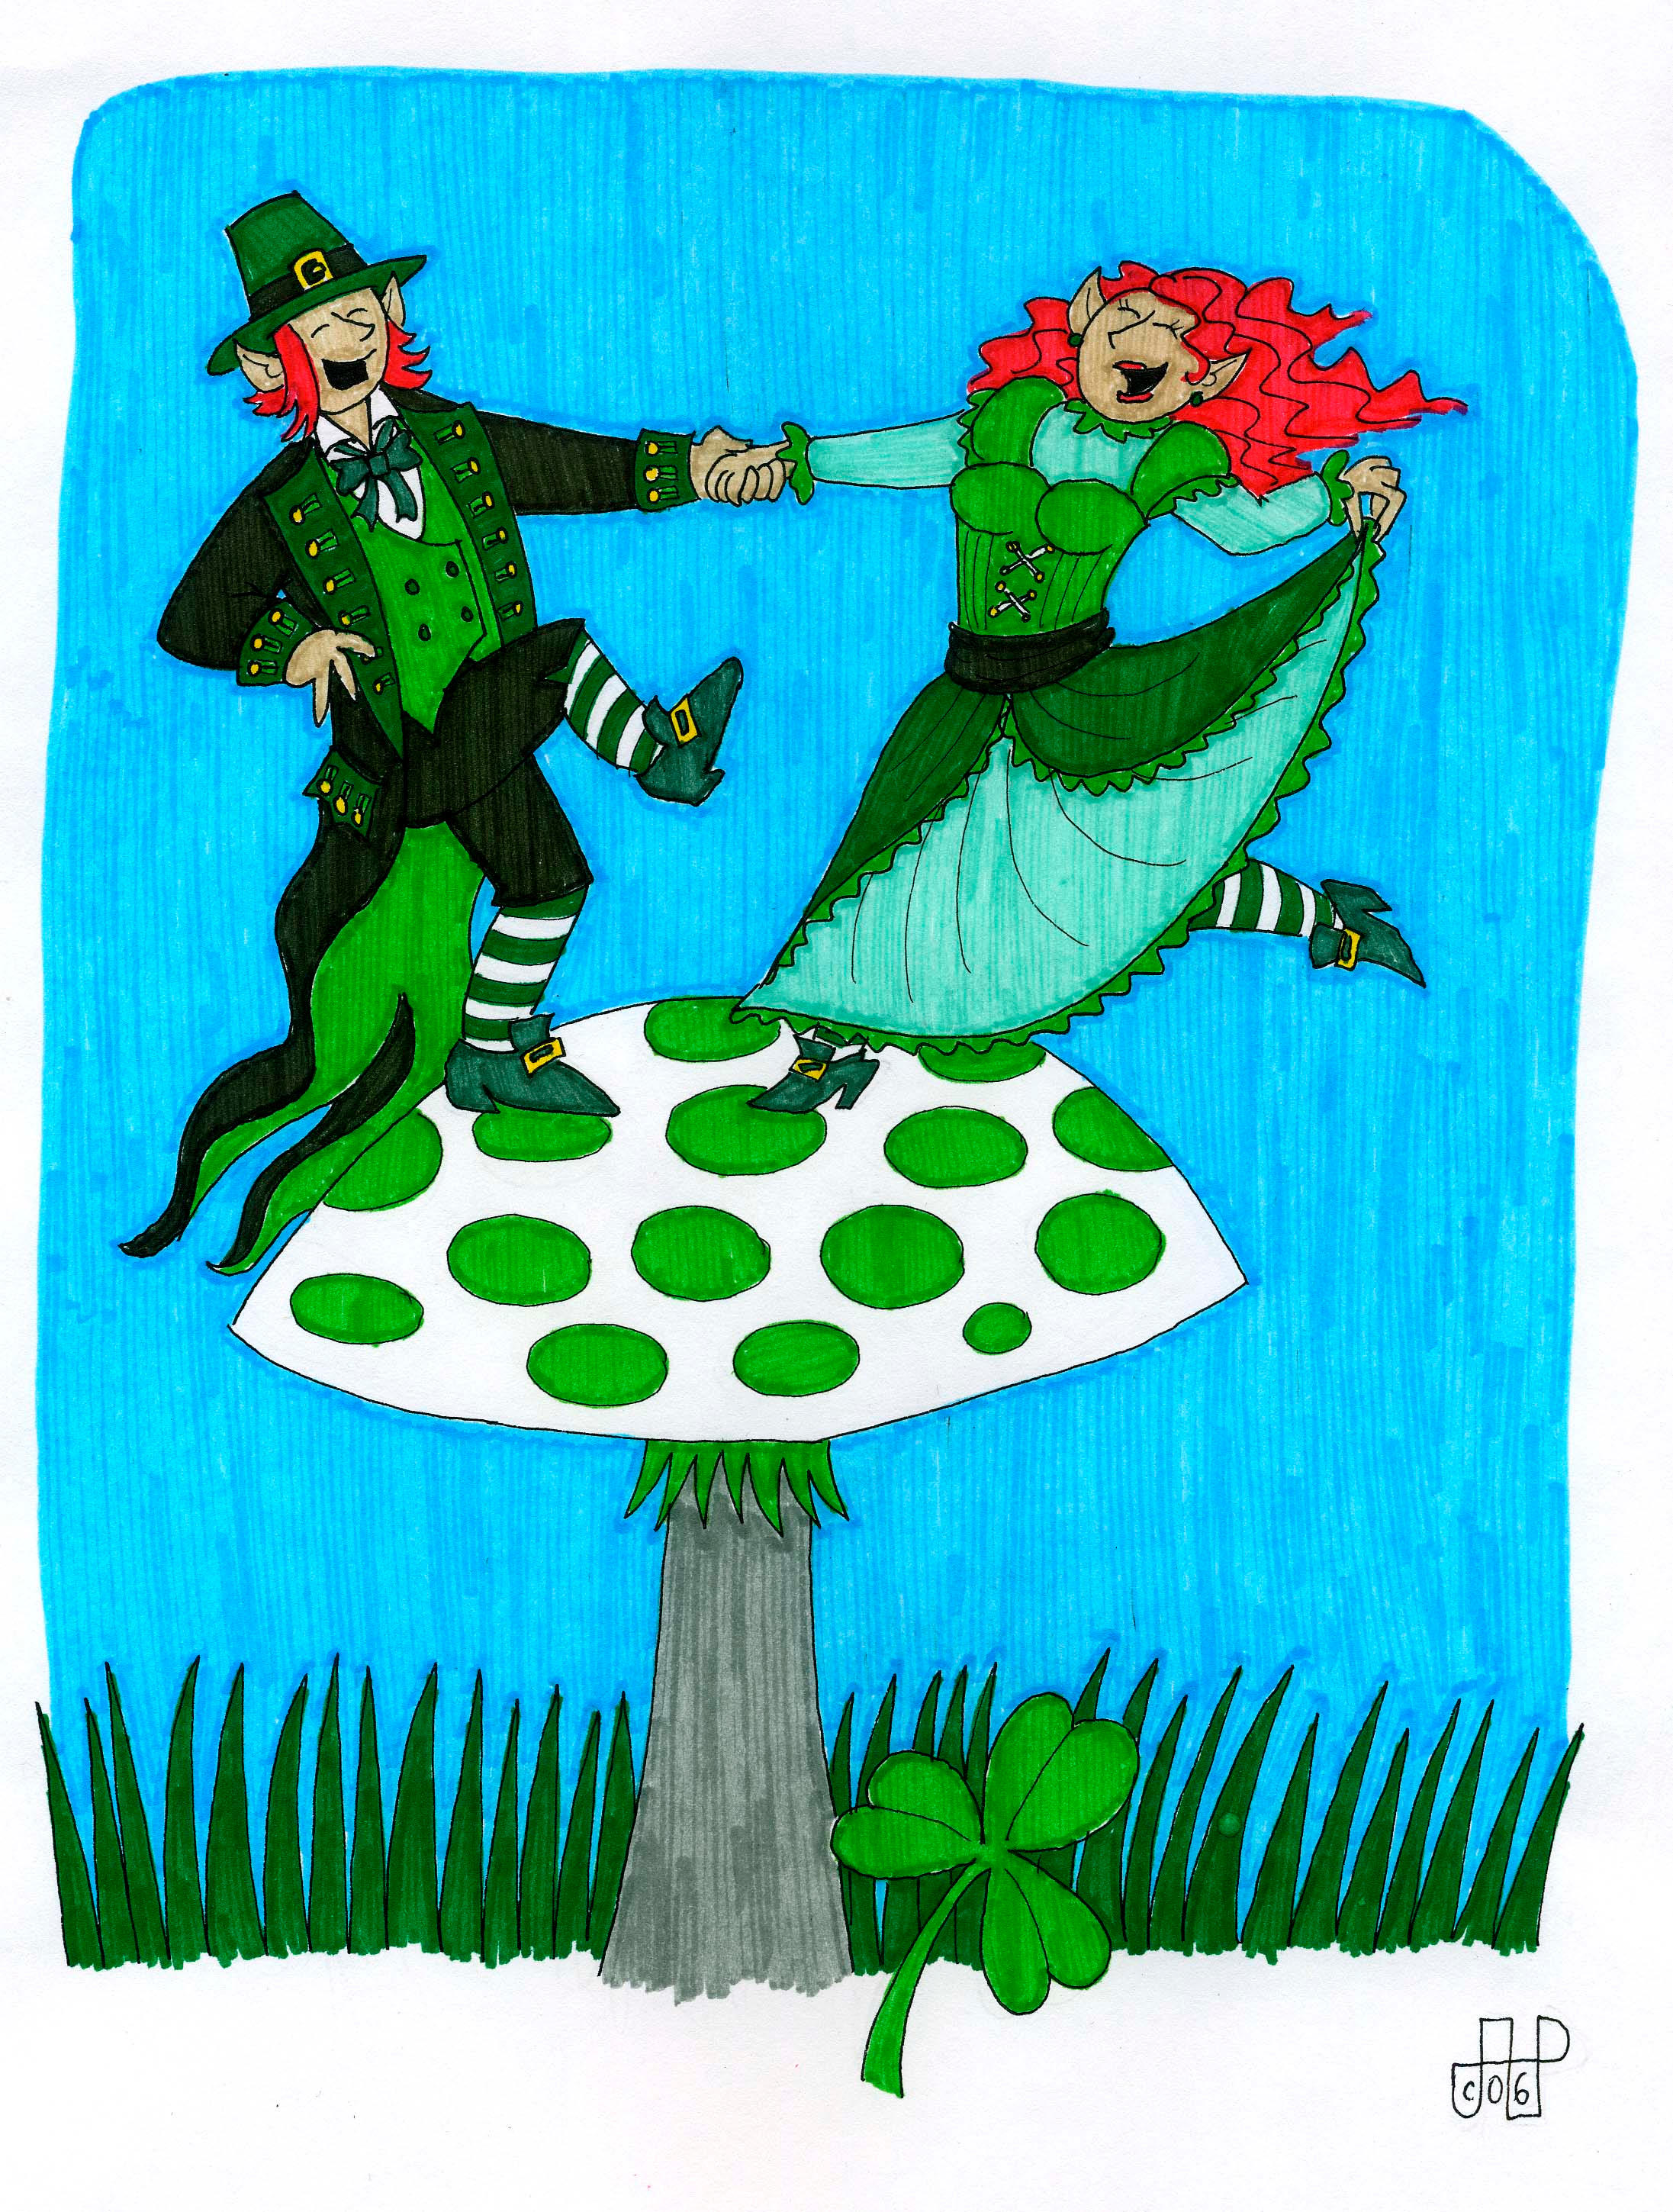 Uncategorized Dancing Leprechauns dancing leprechauns by emperornortonii on deviantart emperornortonii